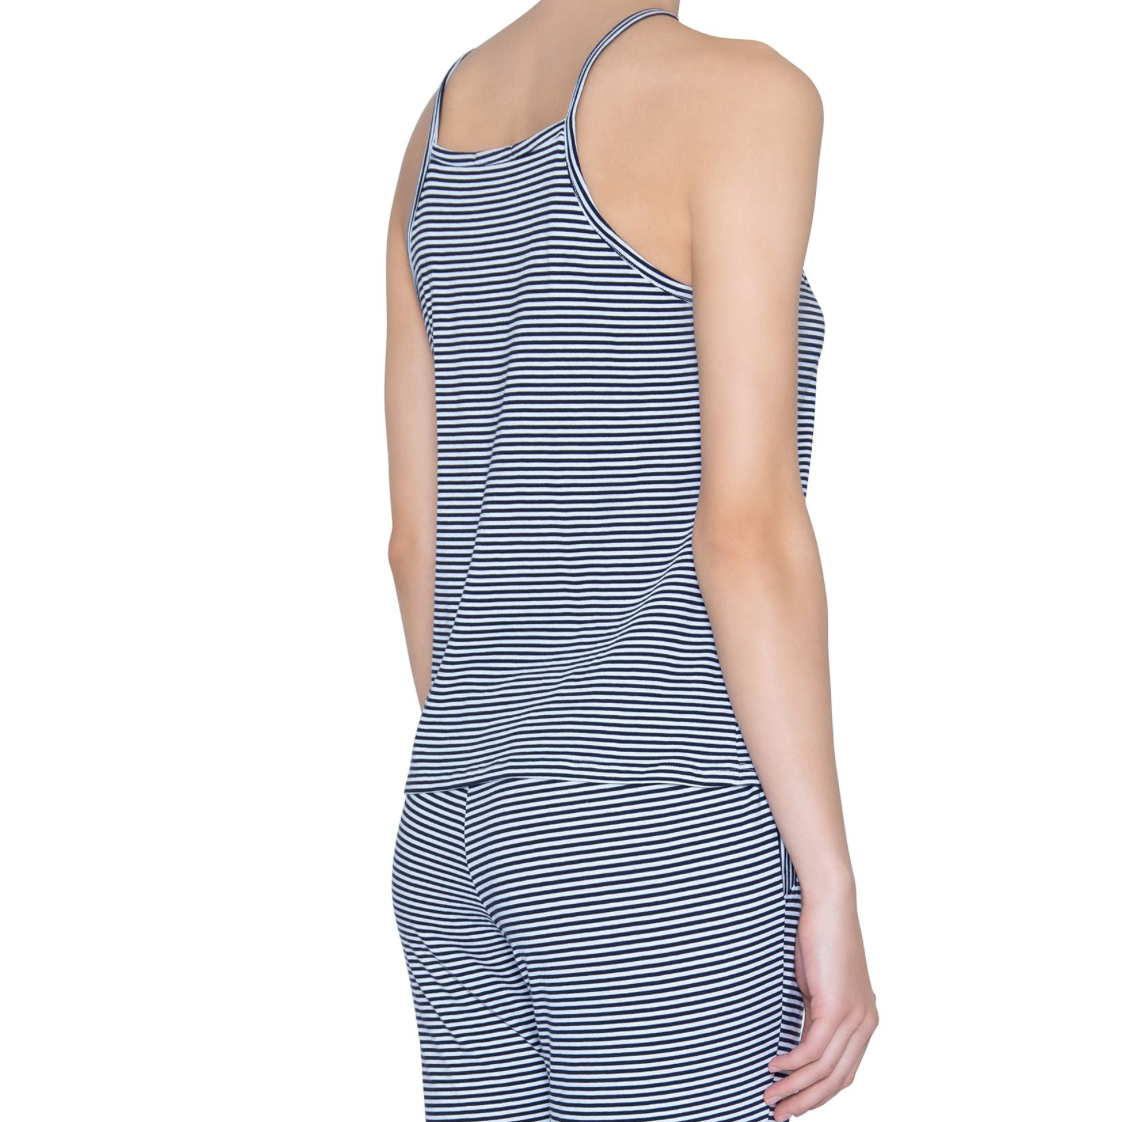 Eberjey Cotton Stripe Halter Tank